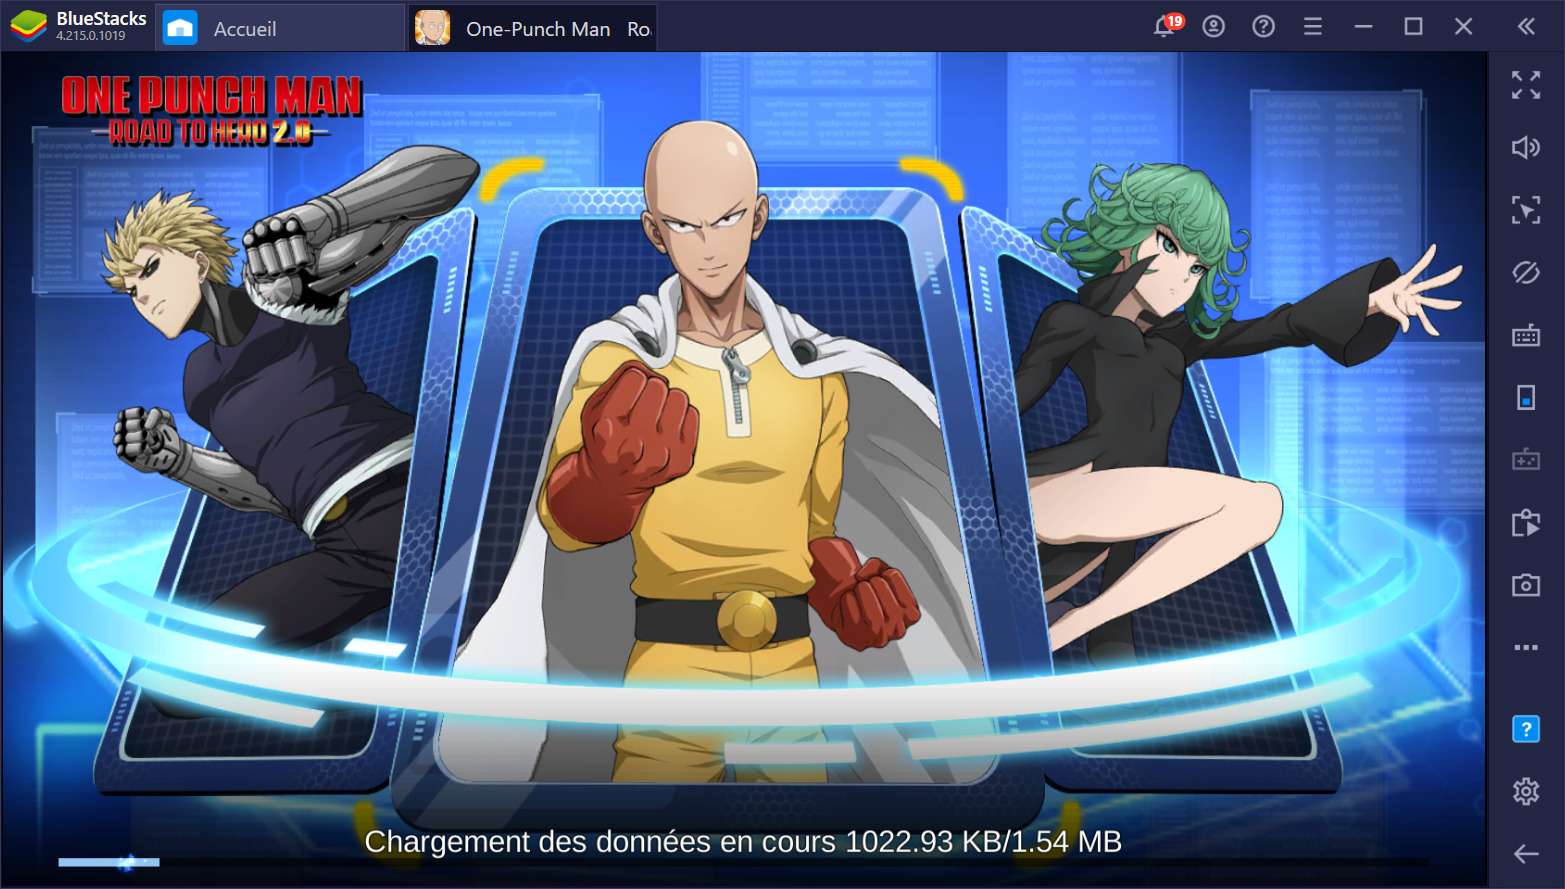 One Punch Man : Road to Hero 2.0 – Trucs, astuces et stratégies